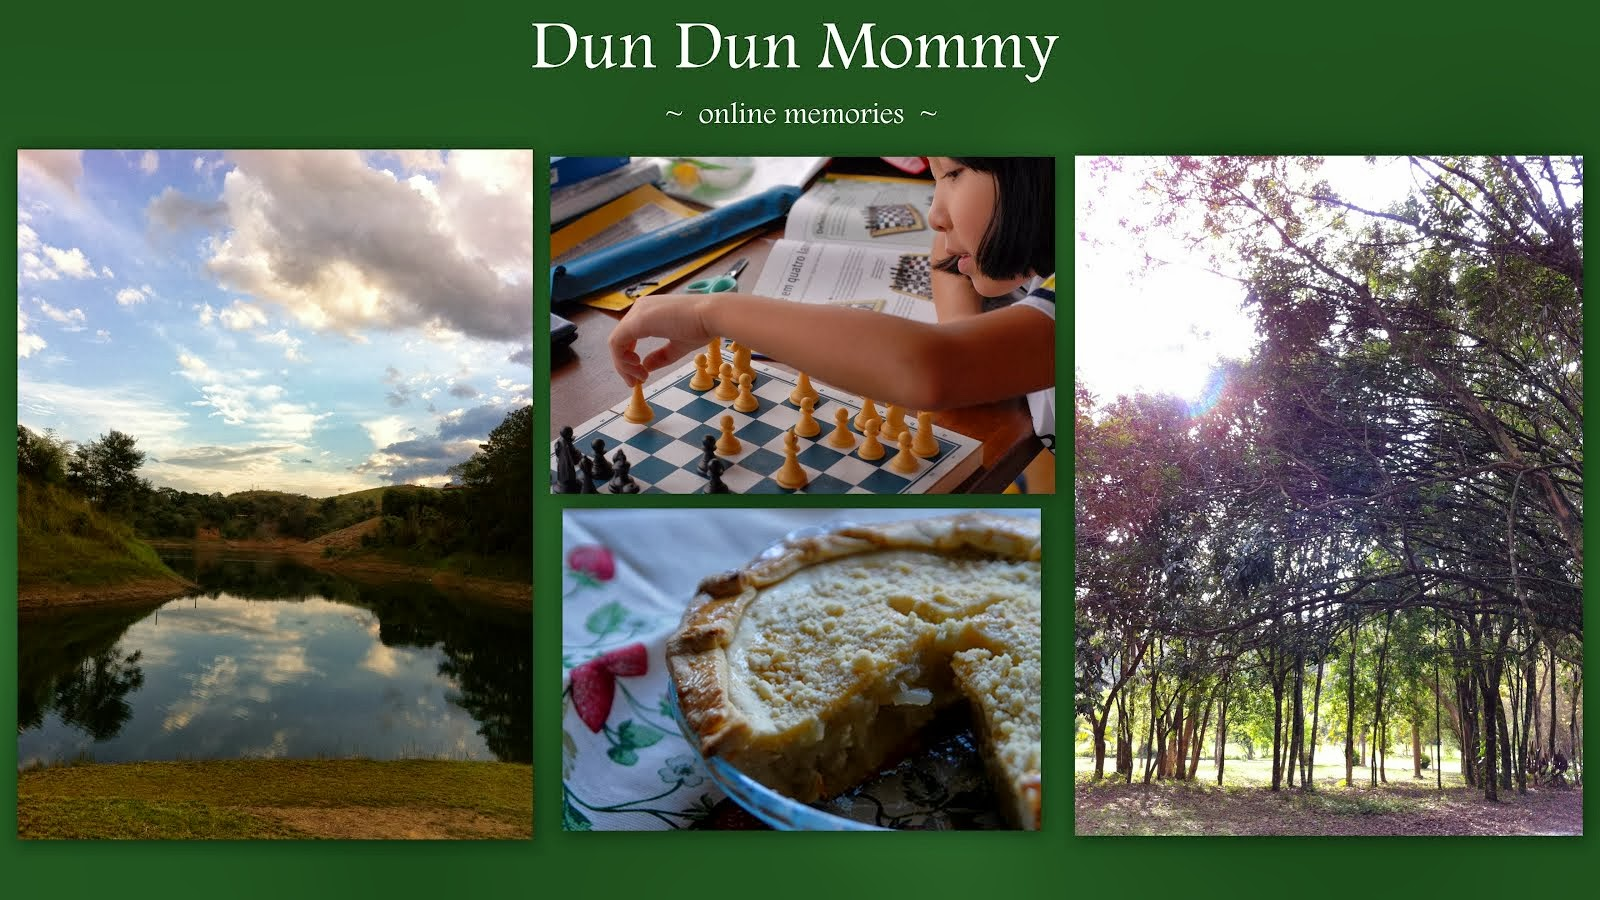 Dun Dun Mommy